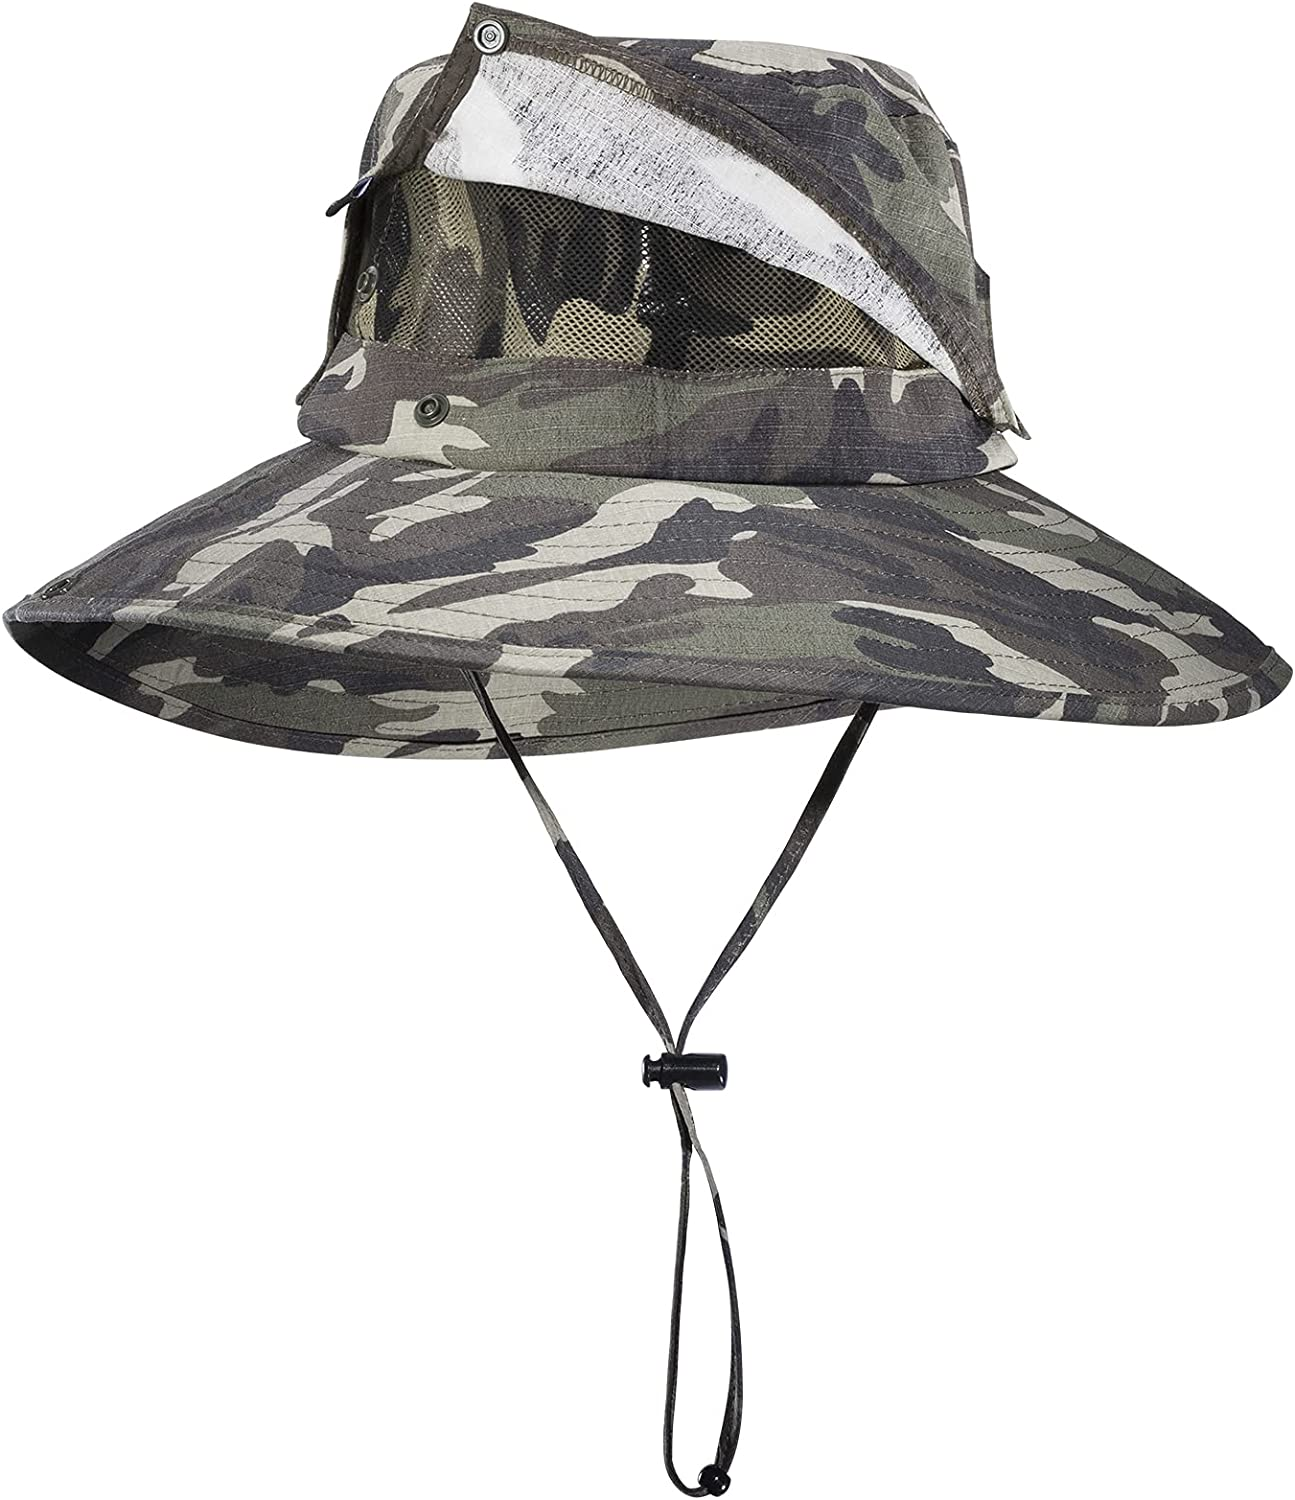 ROCK BROS Fishing Hat for Men Sun Protection Hats with Detachabl